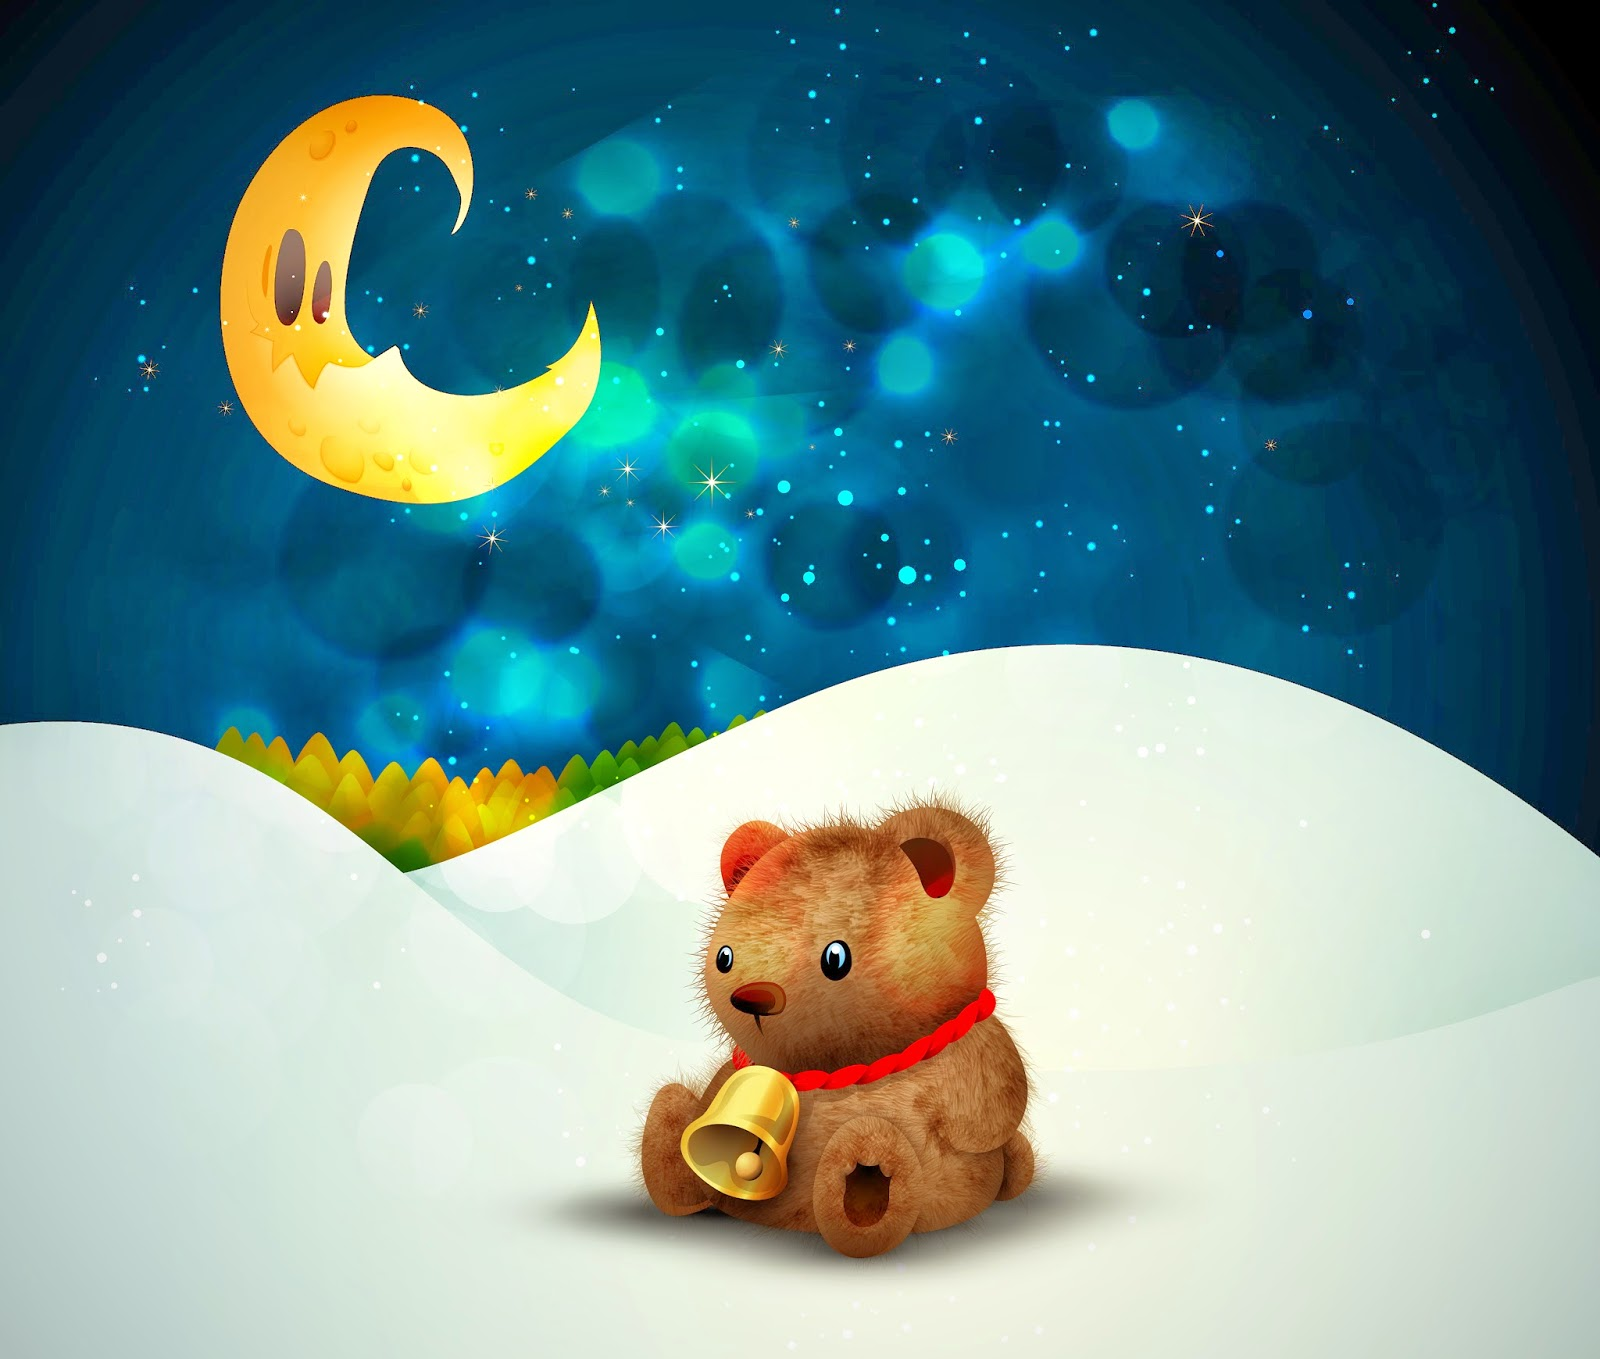 cute-little-teddy-bear-christmas-snow-moon-night-stars-image-5352x4544.jpg